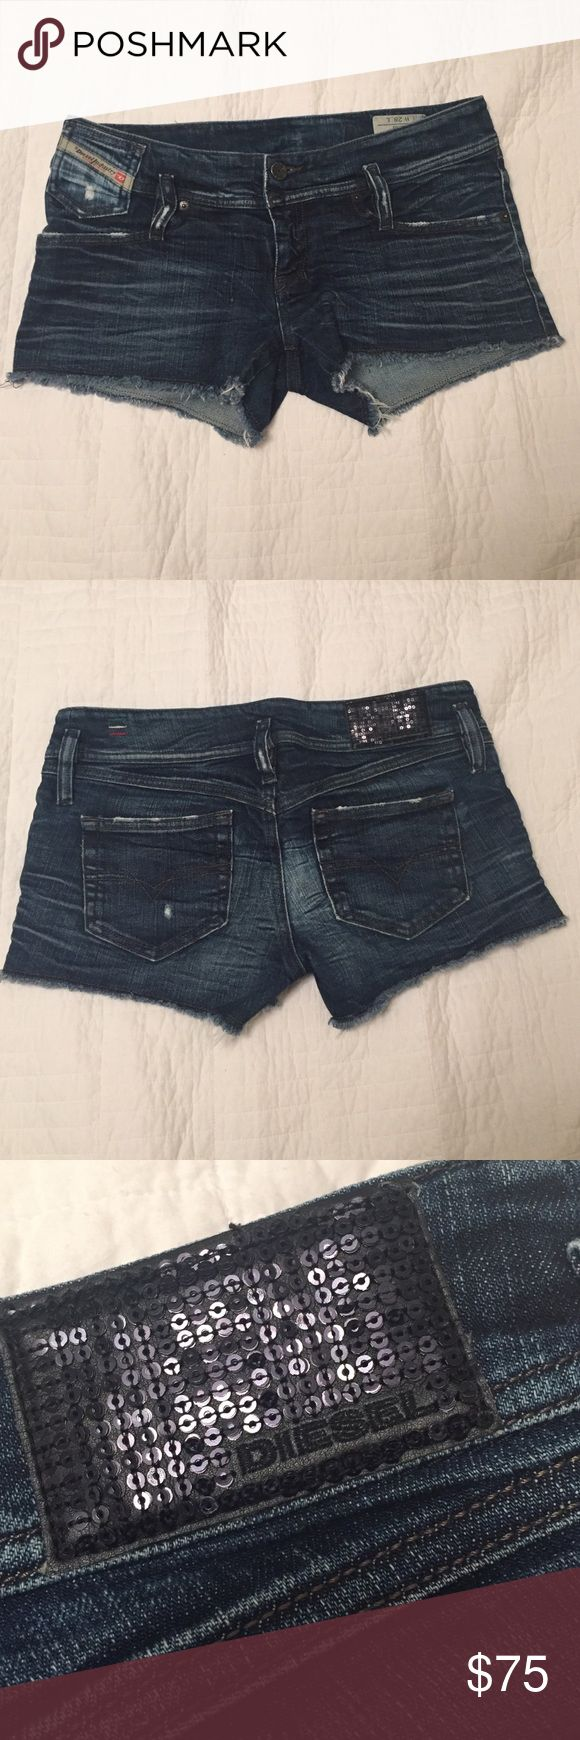 Diesel Denim Shorts Amazing Diesel shorts worn a few times but are in new condition! These have never been altered or cut! Originals! Put in an reasonable offer! Diesel Shorts Jean Shorts